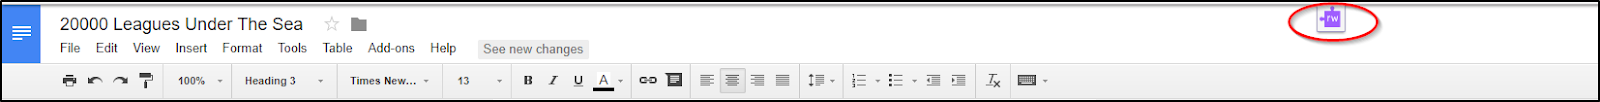 Read&Write for Google Chrome Toolbar Tab Retracted